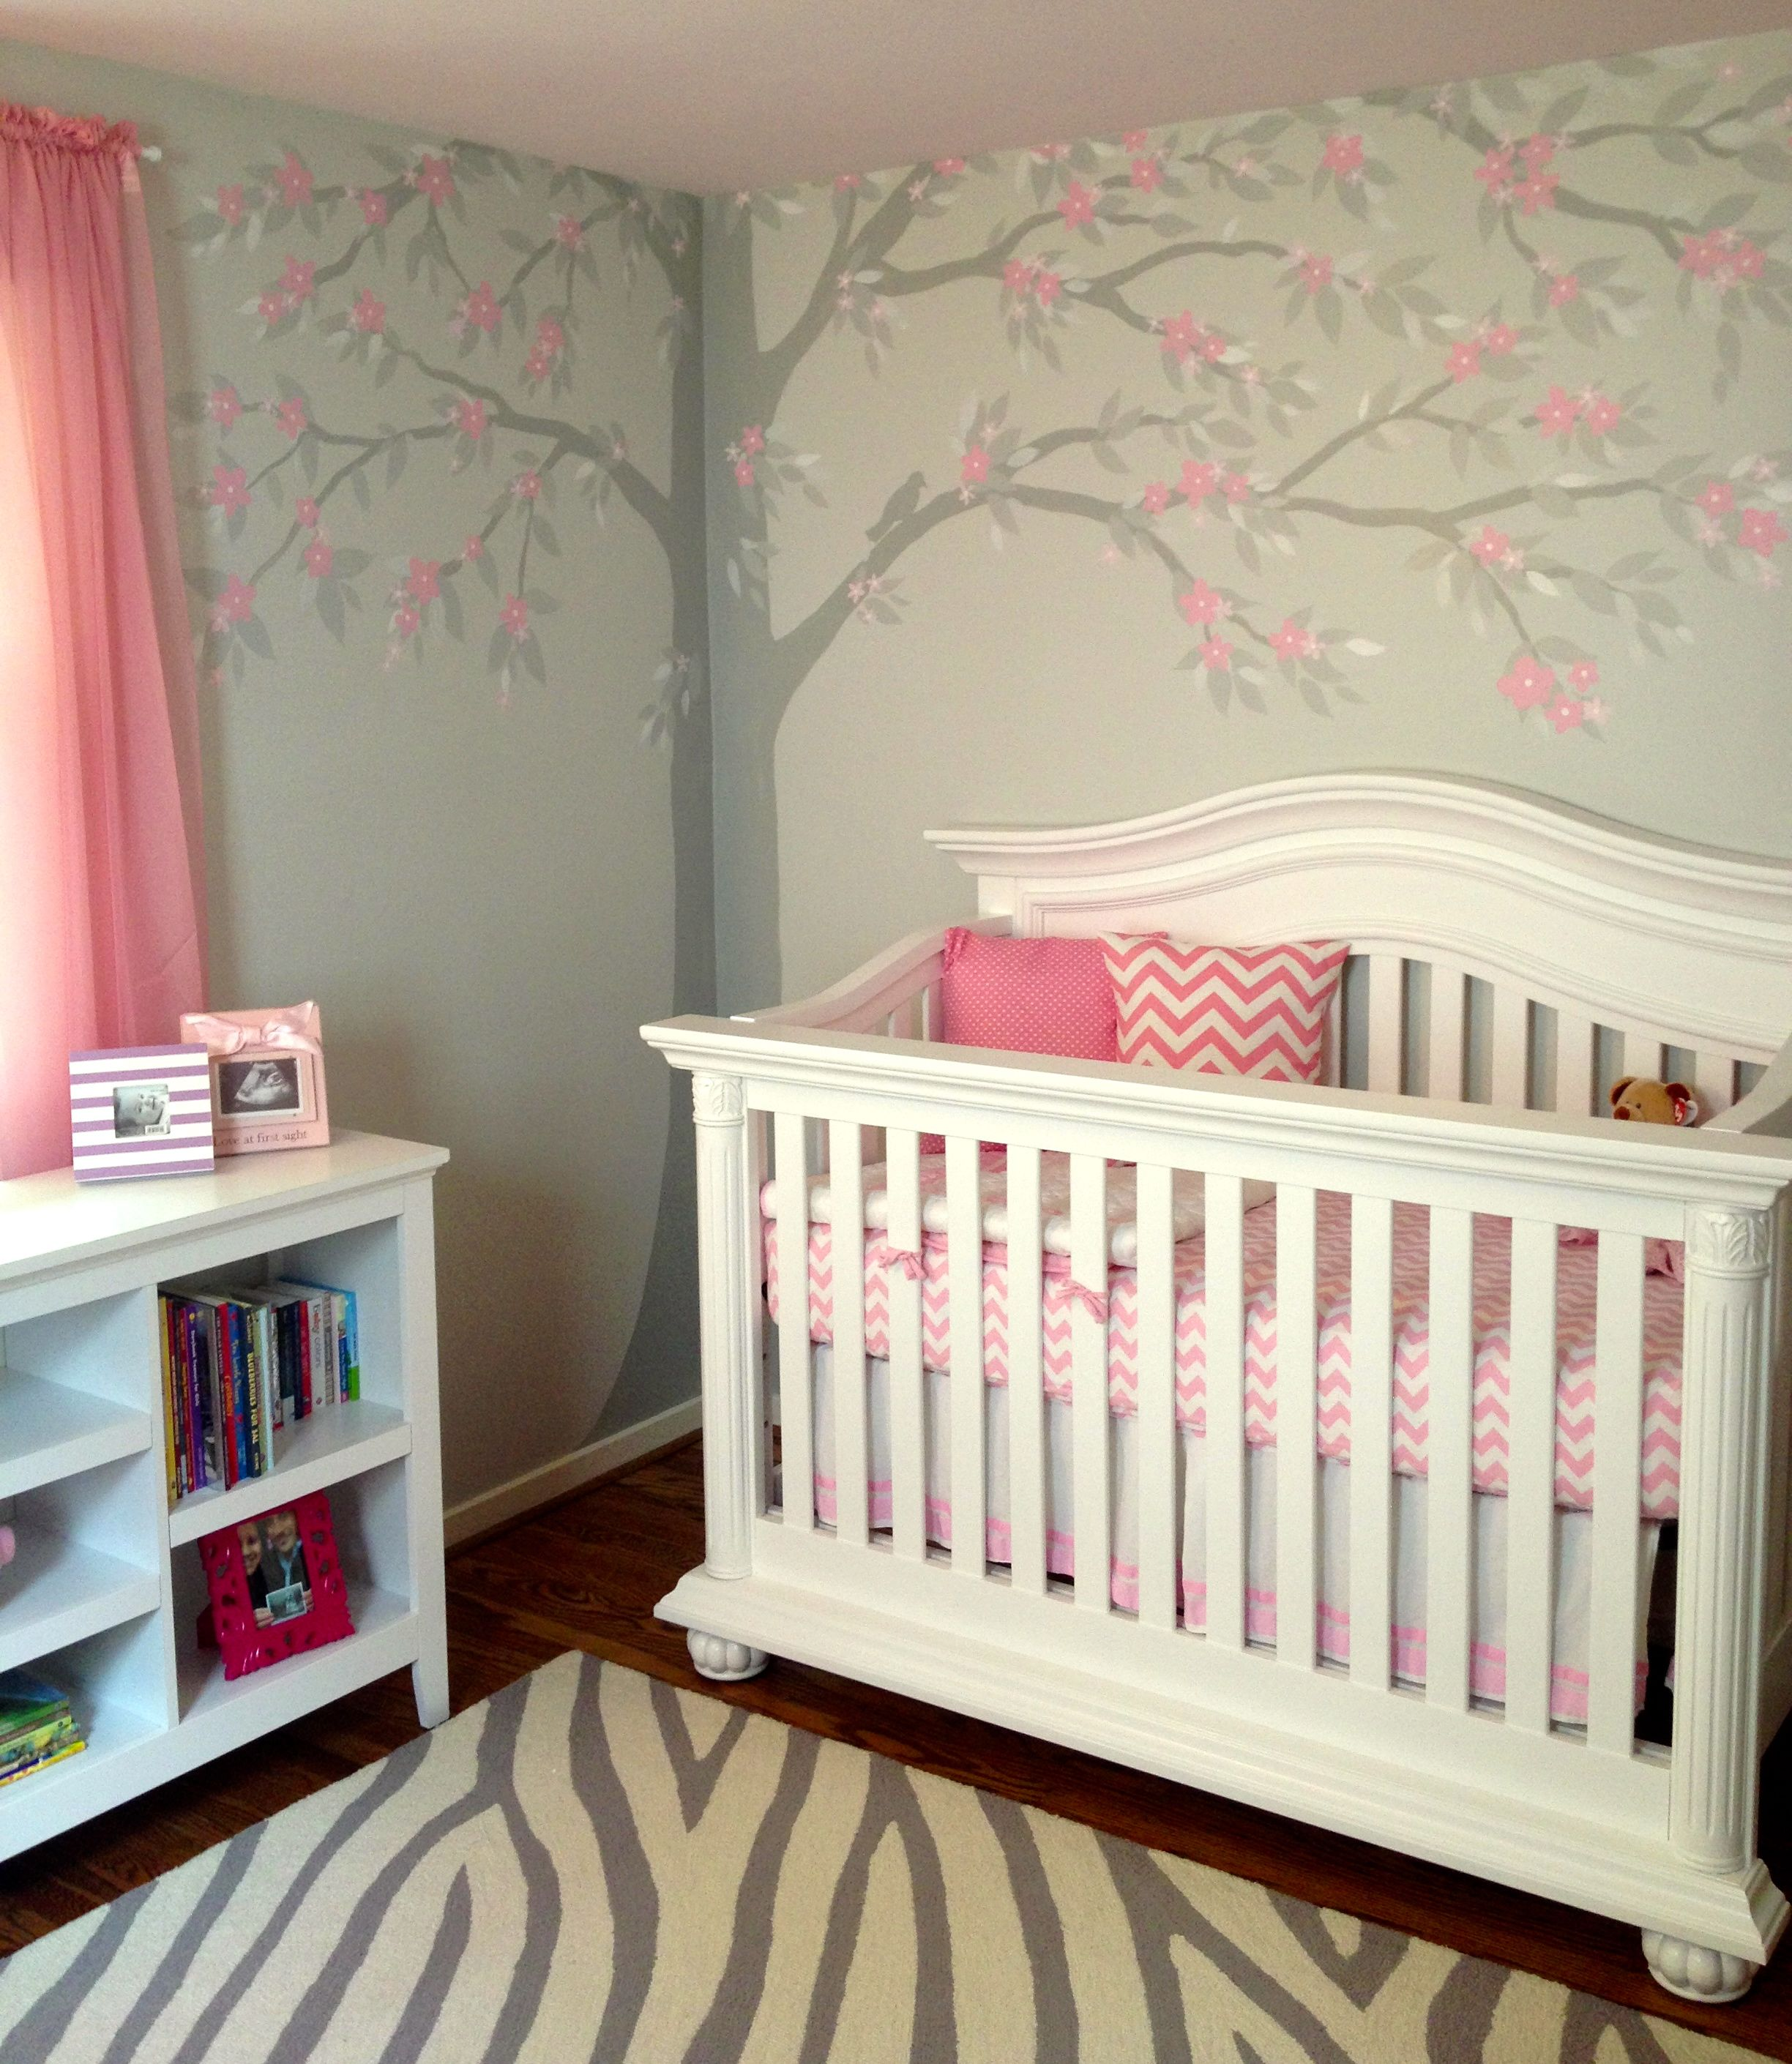 Soft pink and gray painted walls ceiling and floral tree Nursery wall ideas